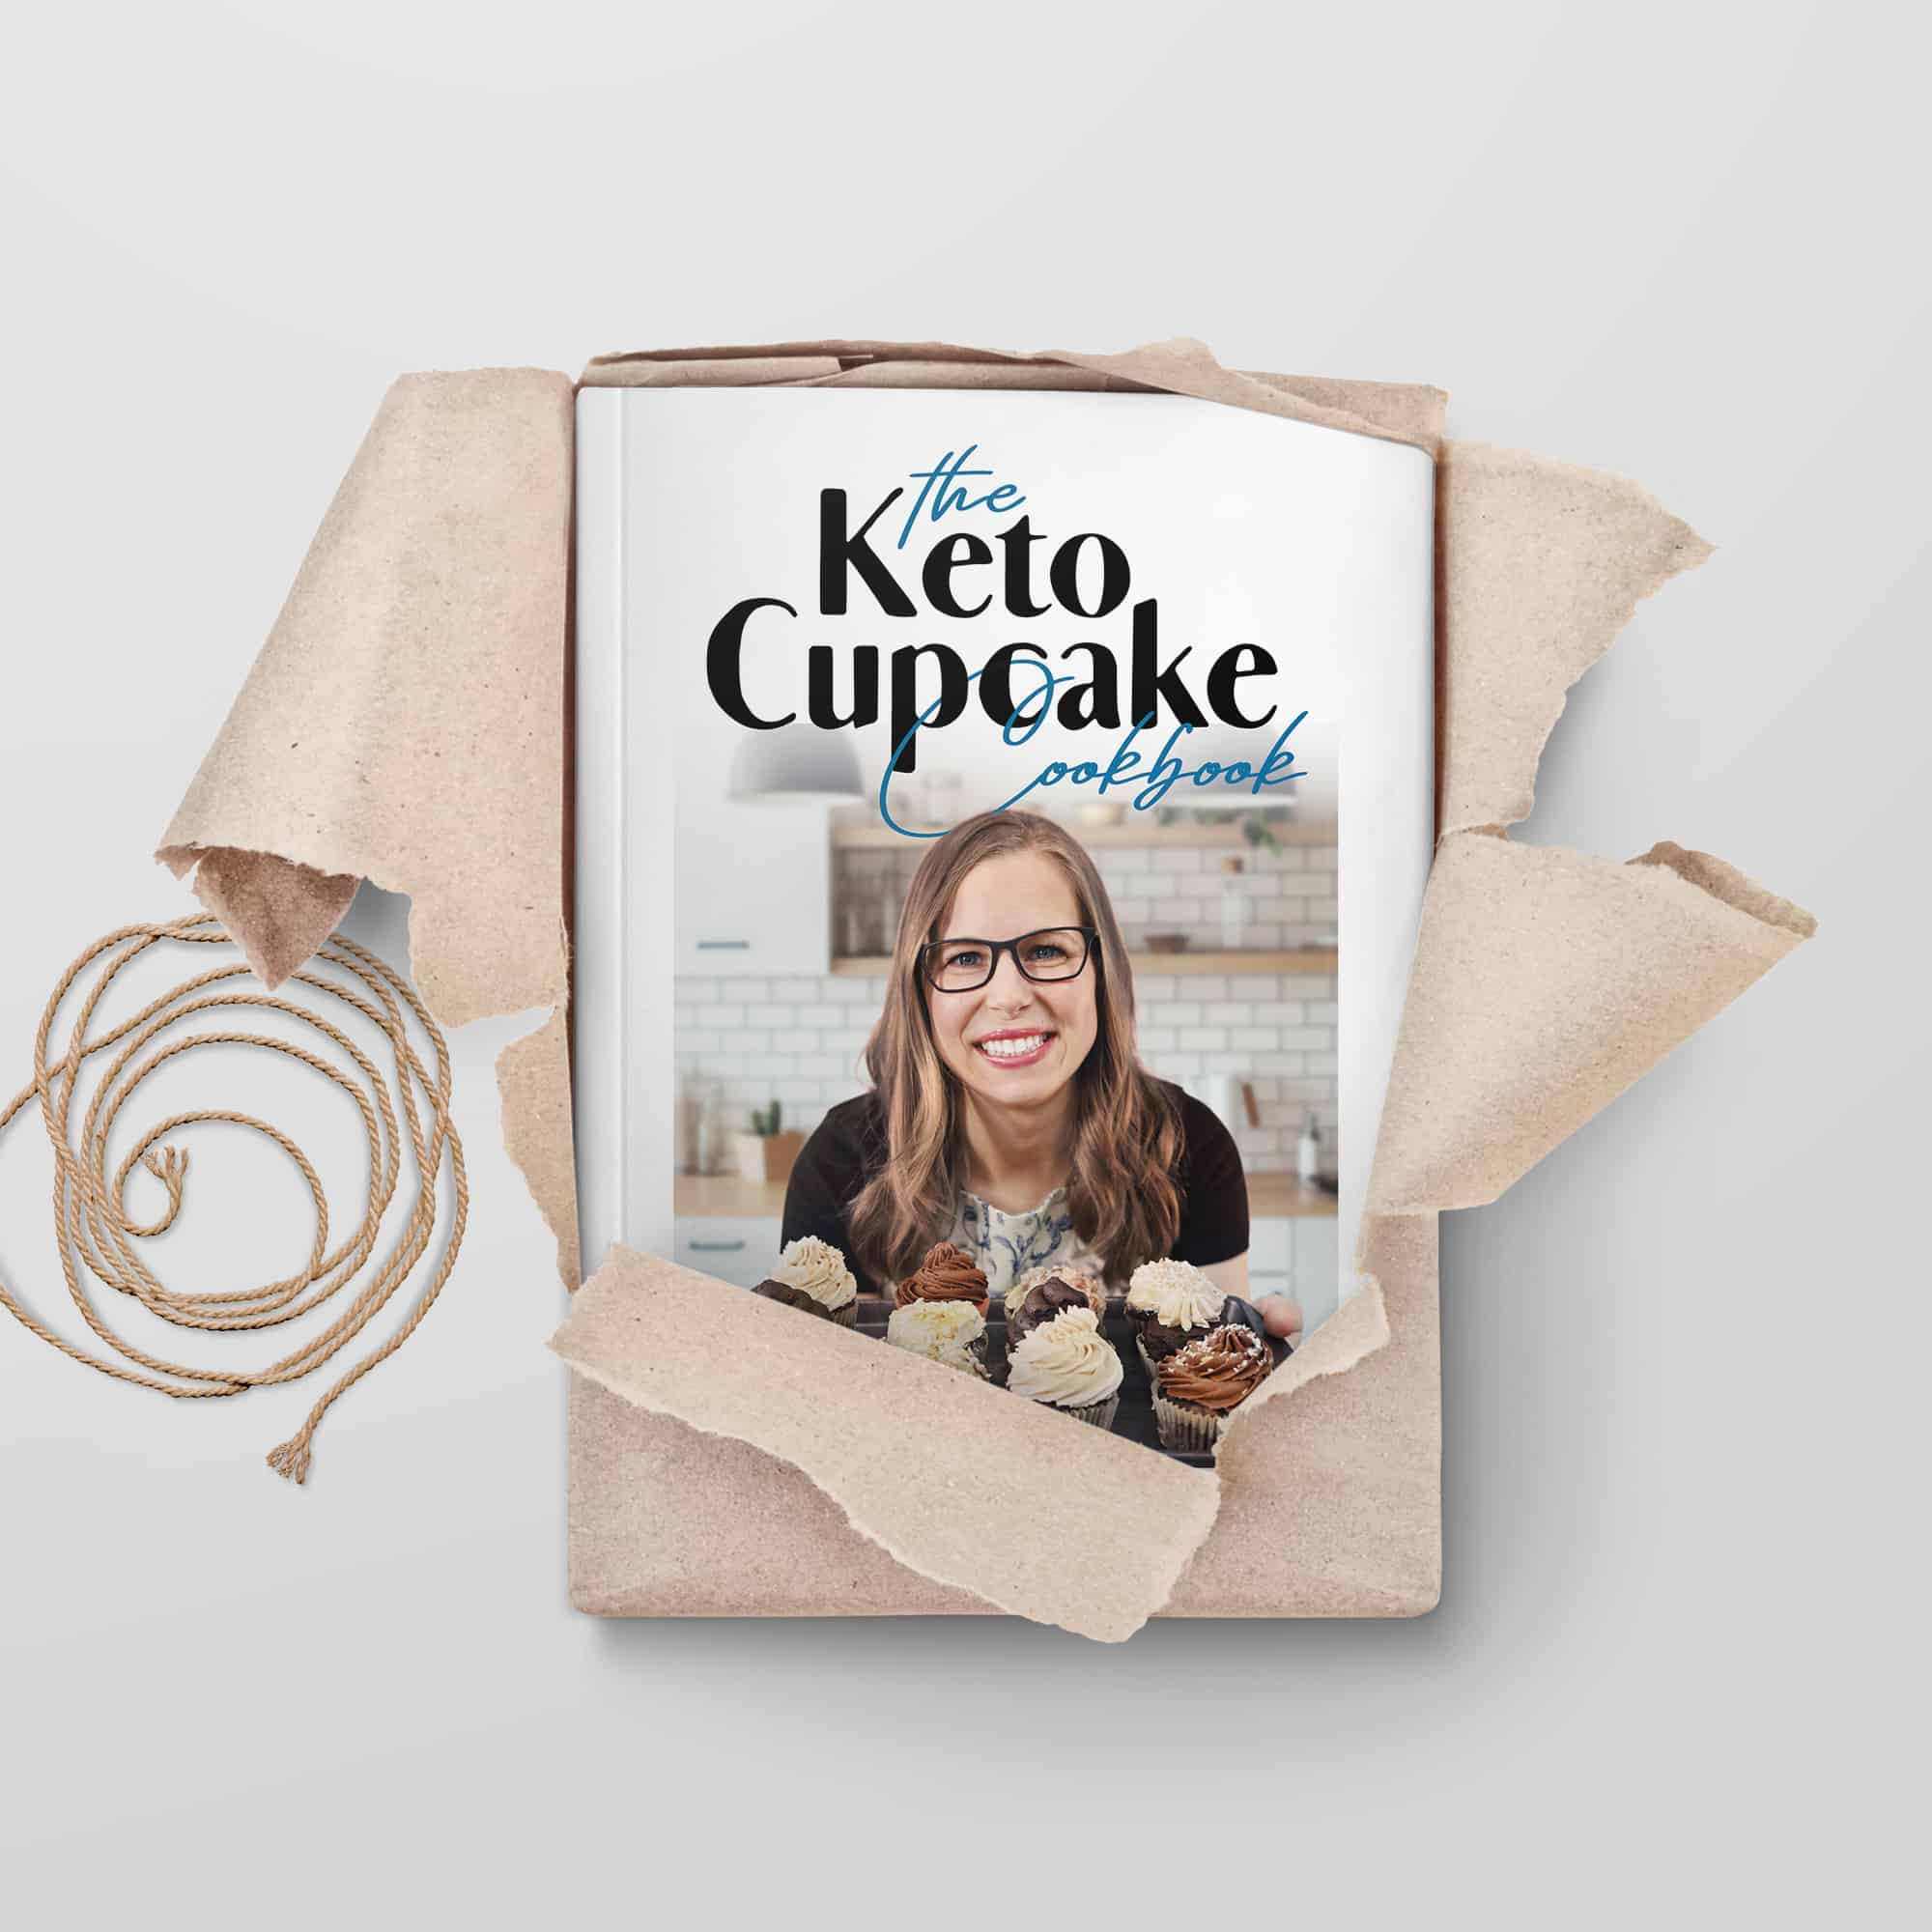 keto cupcake cookbook being unwrapped